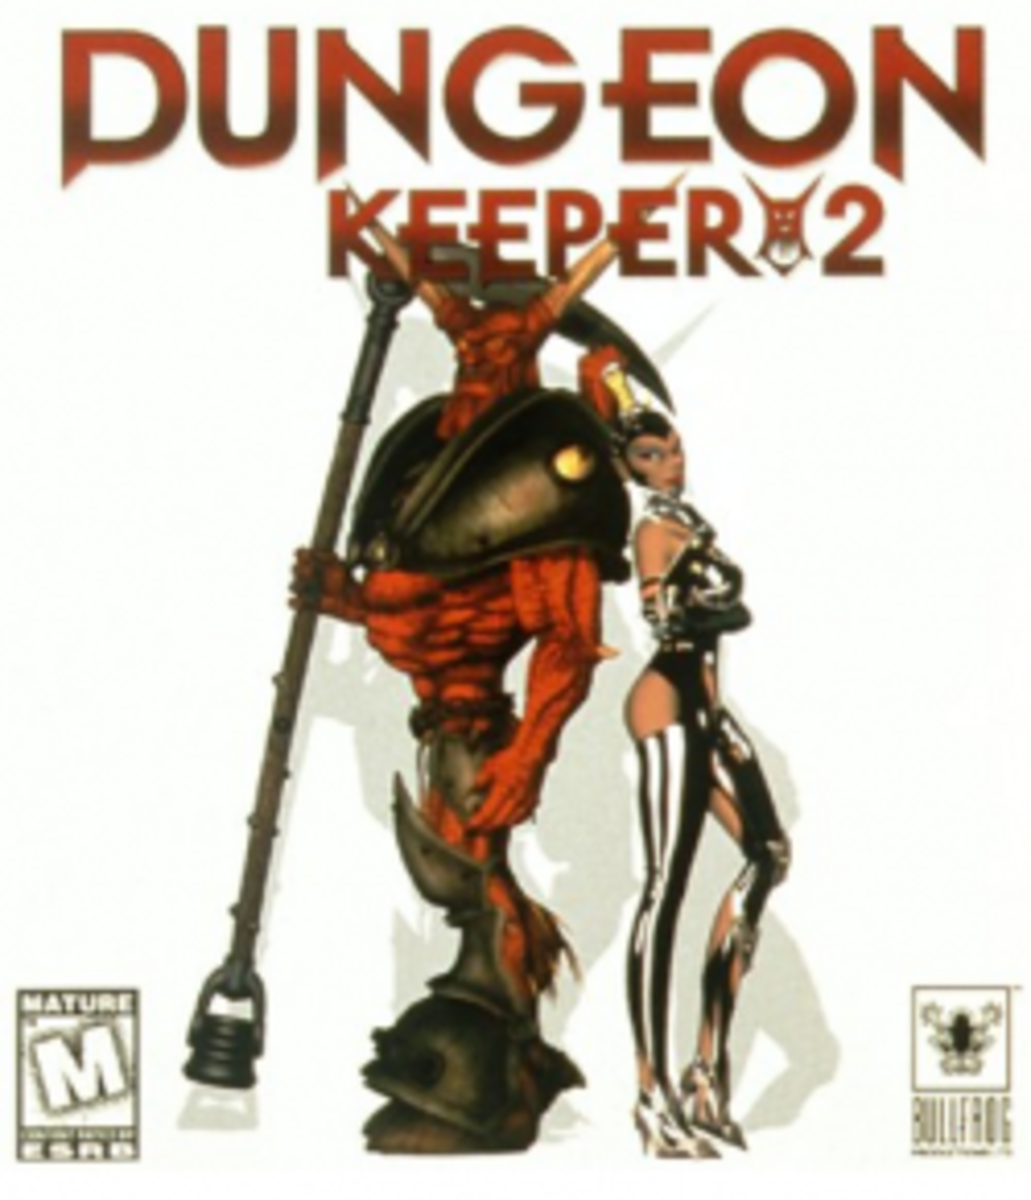 My Top 3 Games Like Dungeon Keeper - How My Love For Gaming Started